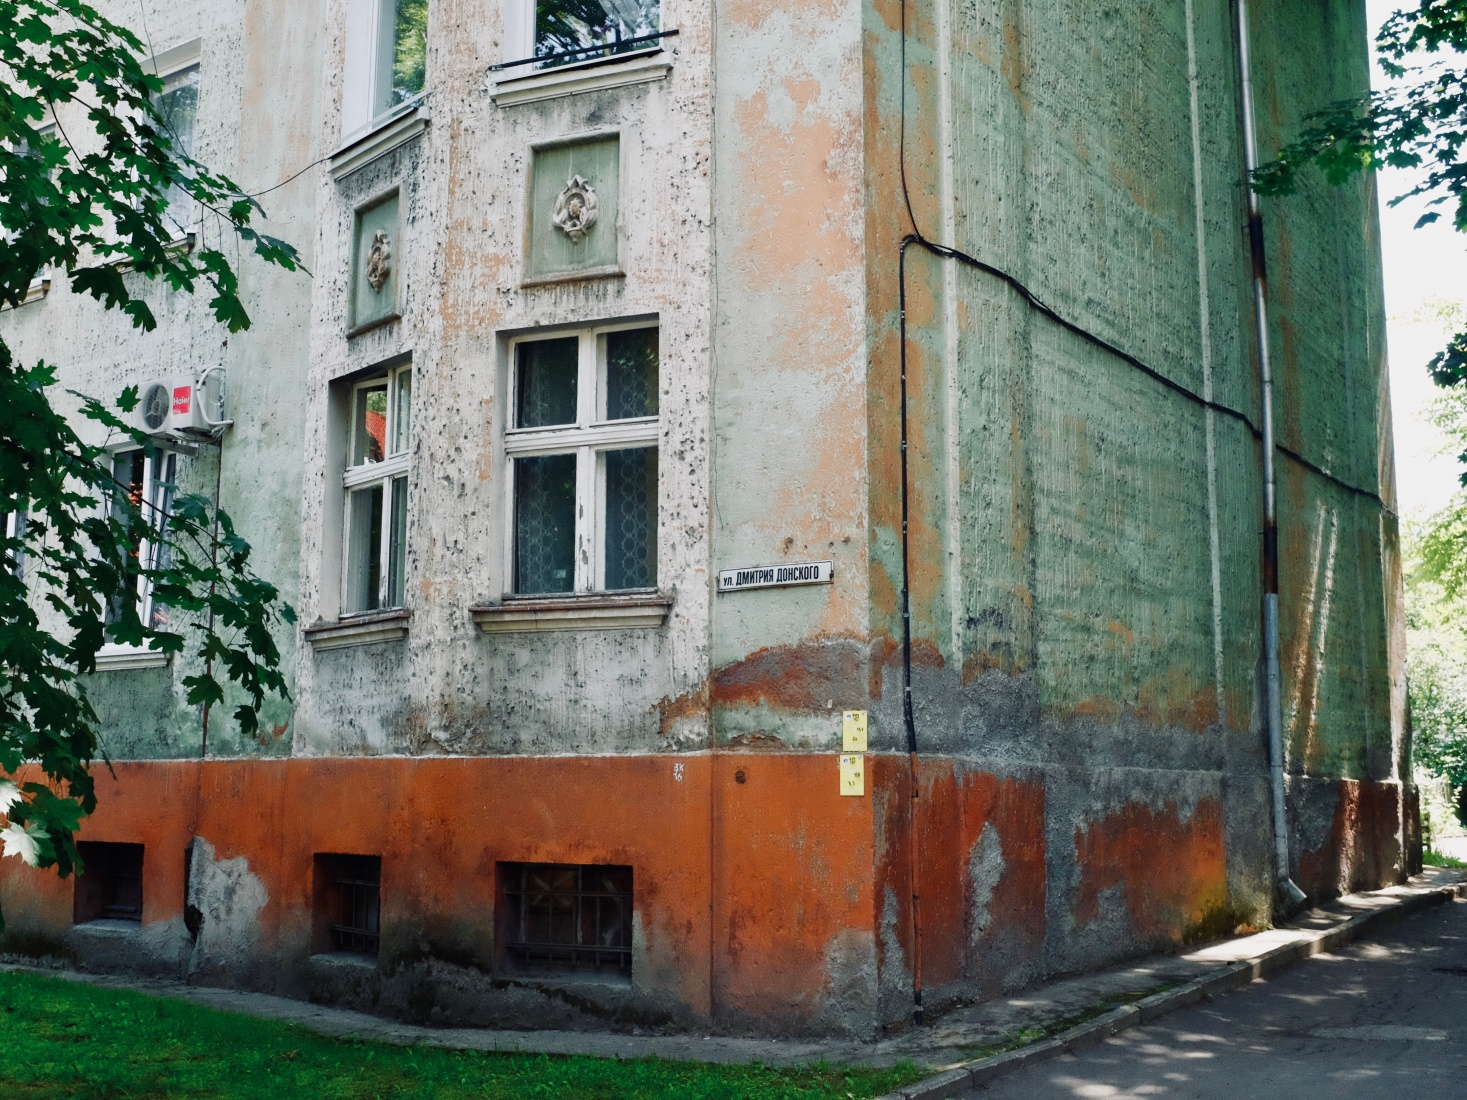 Old residential building in the Amalienau neighborhood of Kaliningrad, Russia, that needs restoration or renovation.